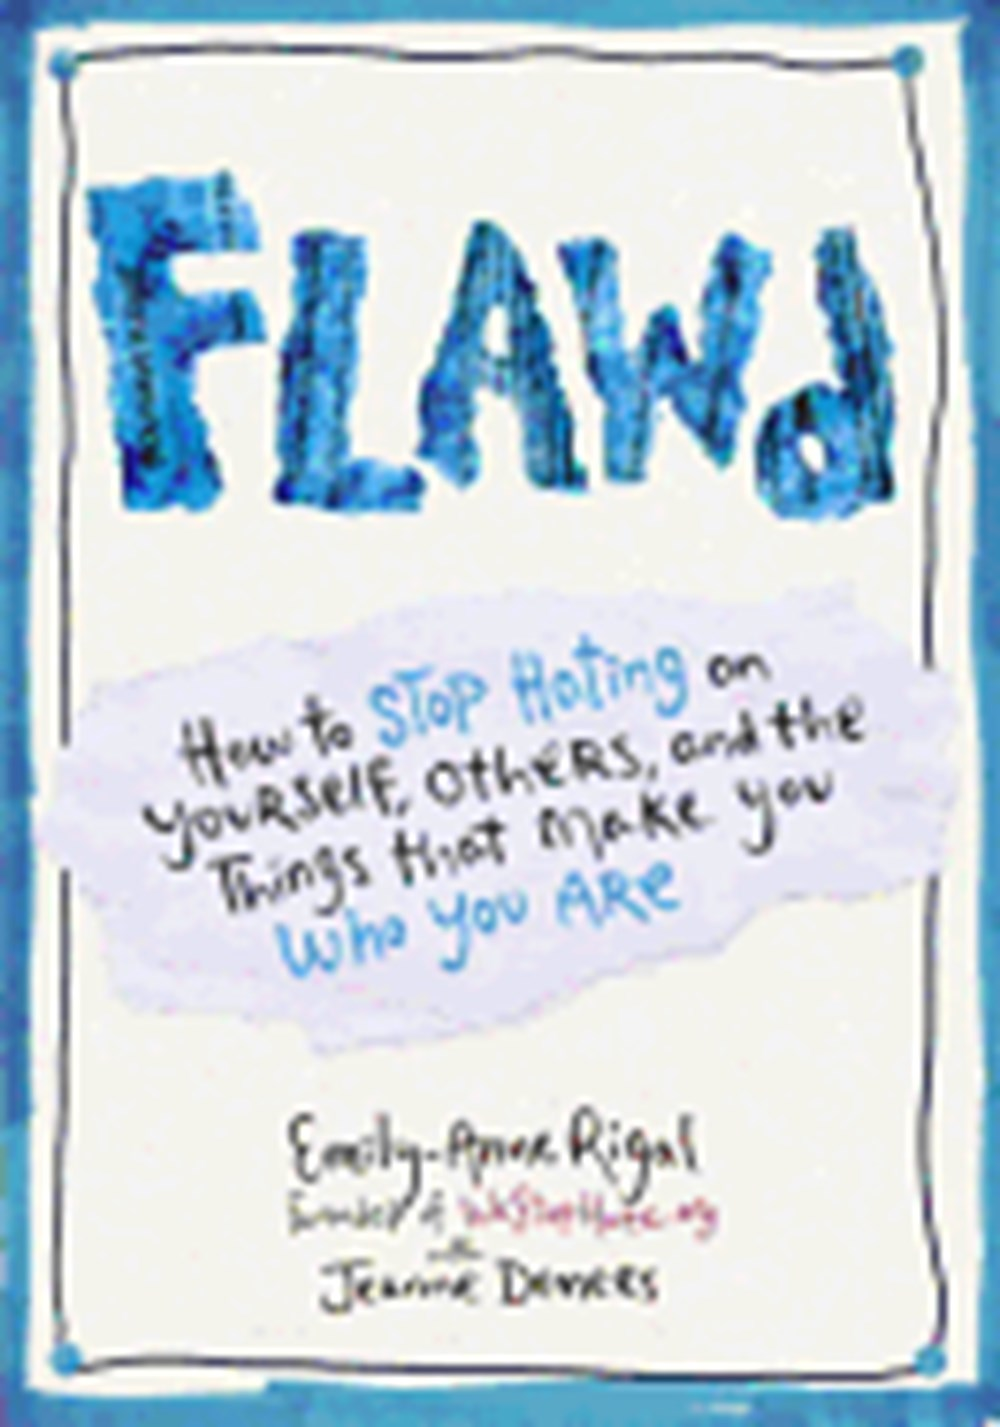 Flawd How to Stop Hating on Yourself, Others, and the Things That Make You Who You Are